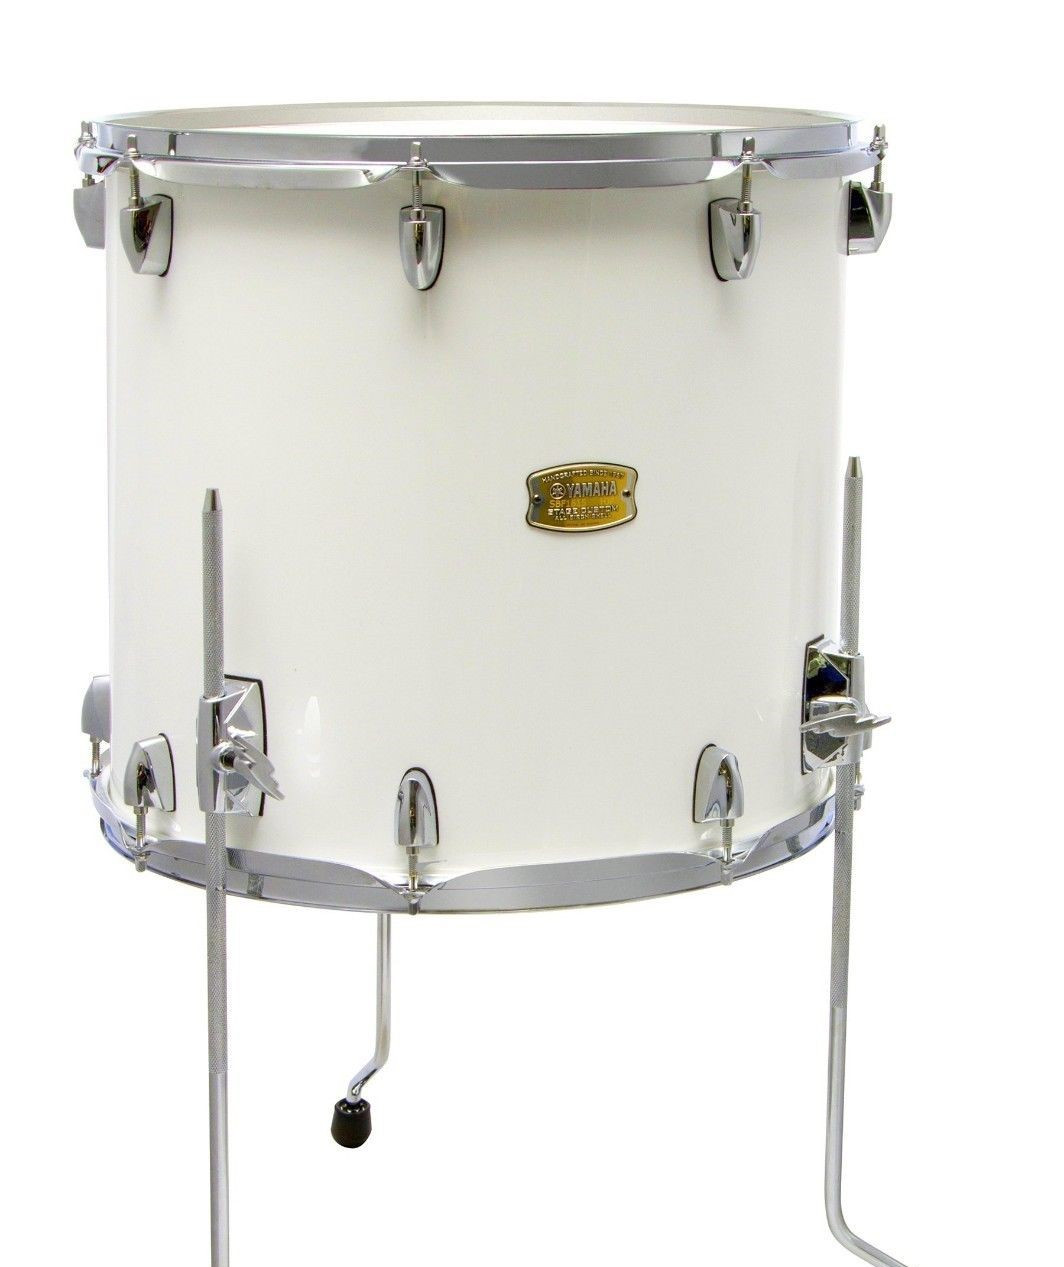 Yamaha Floor Tom Brackets